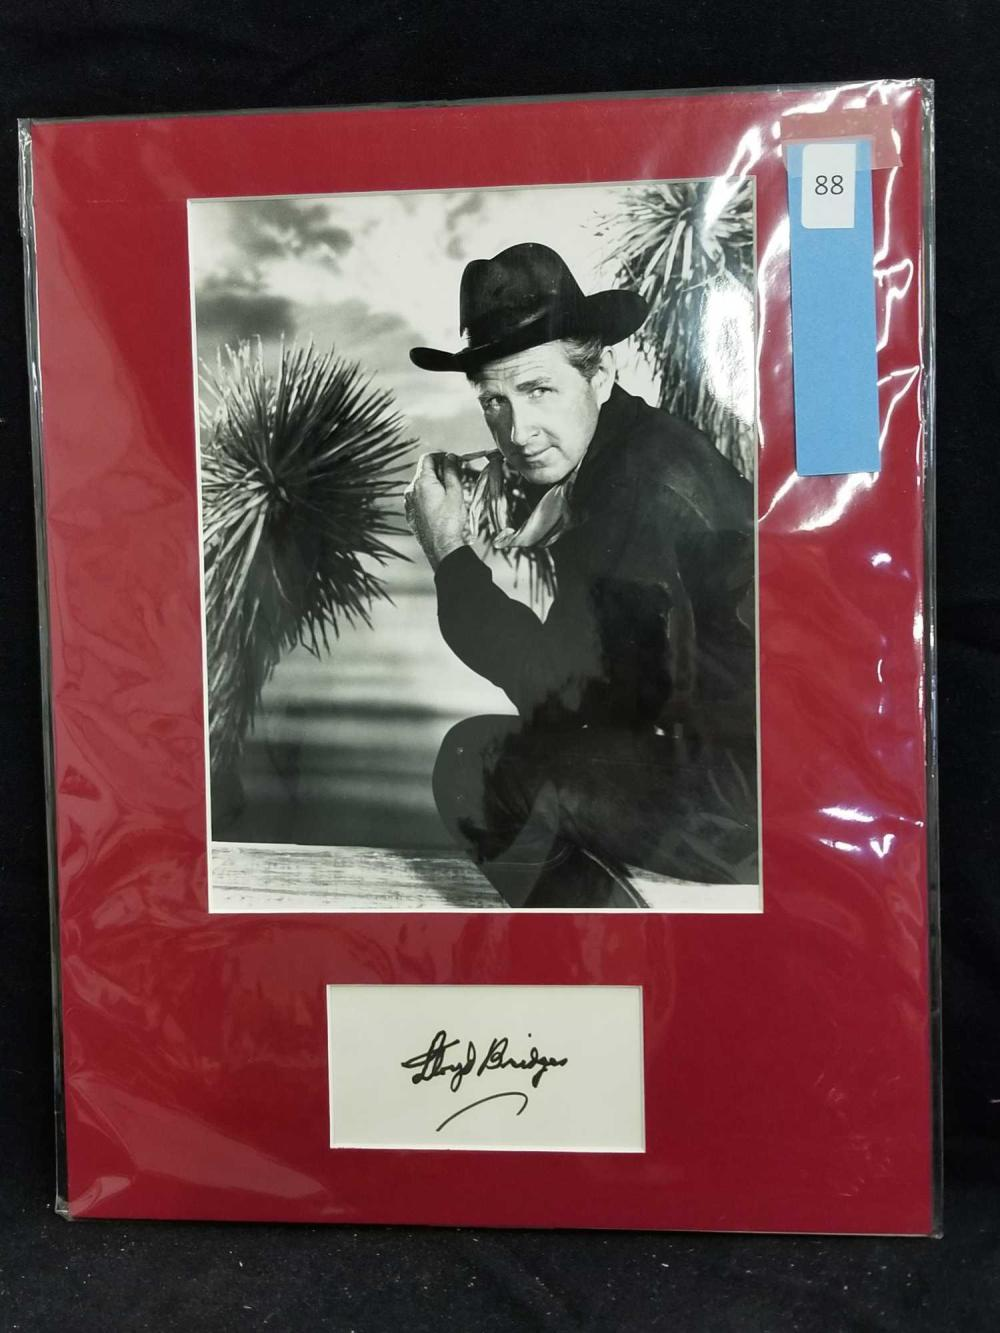 LLOYD BRIDGES WESTERN MOVIE STILL BLACK & WHITE PHOTO W/ SIGNATURE CARD